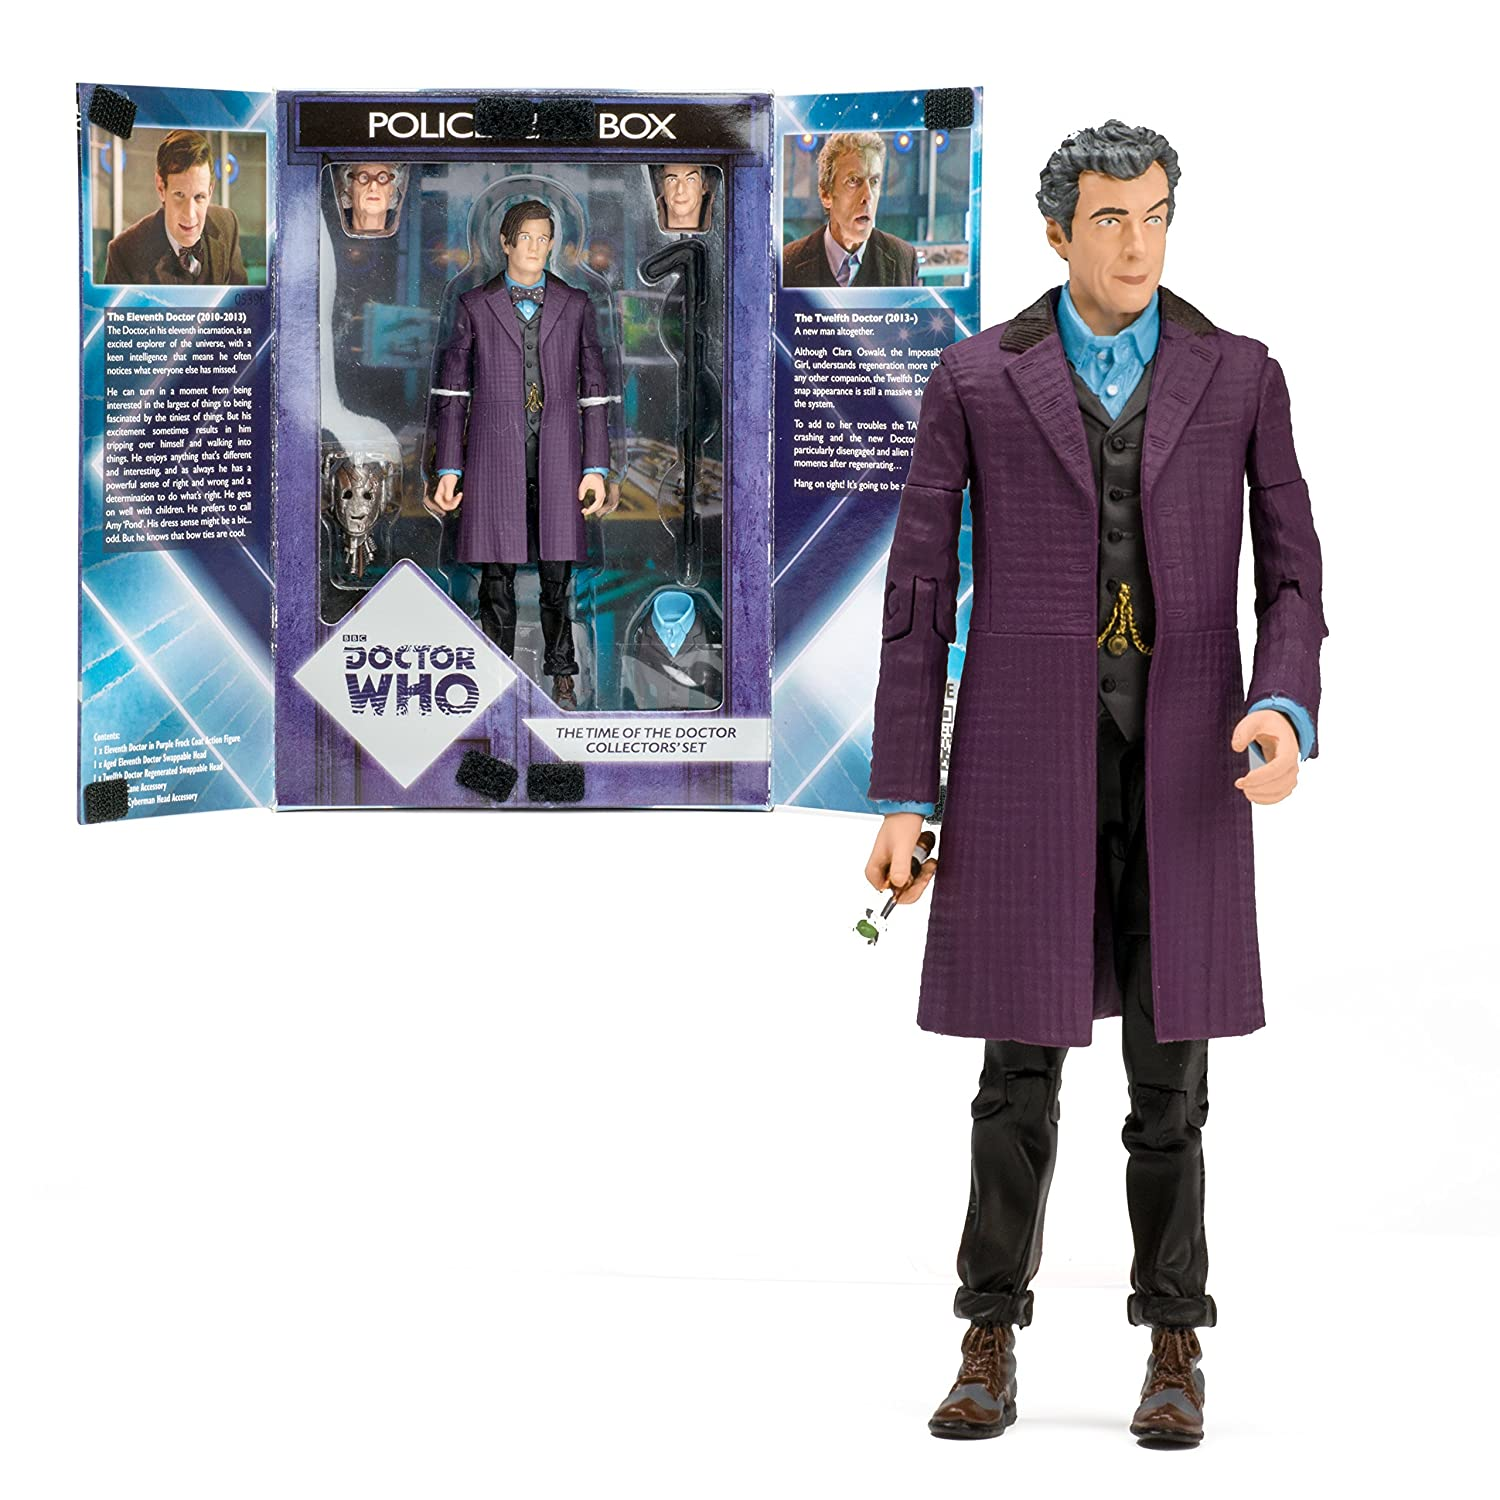 a71d79379f Doctor who The Time of the doctor collectors figure set  Amazon.co.uk  Toys    Games